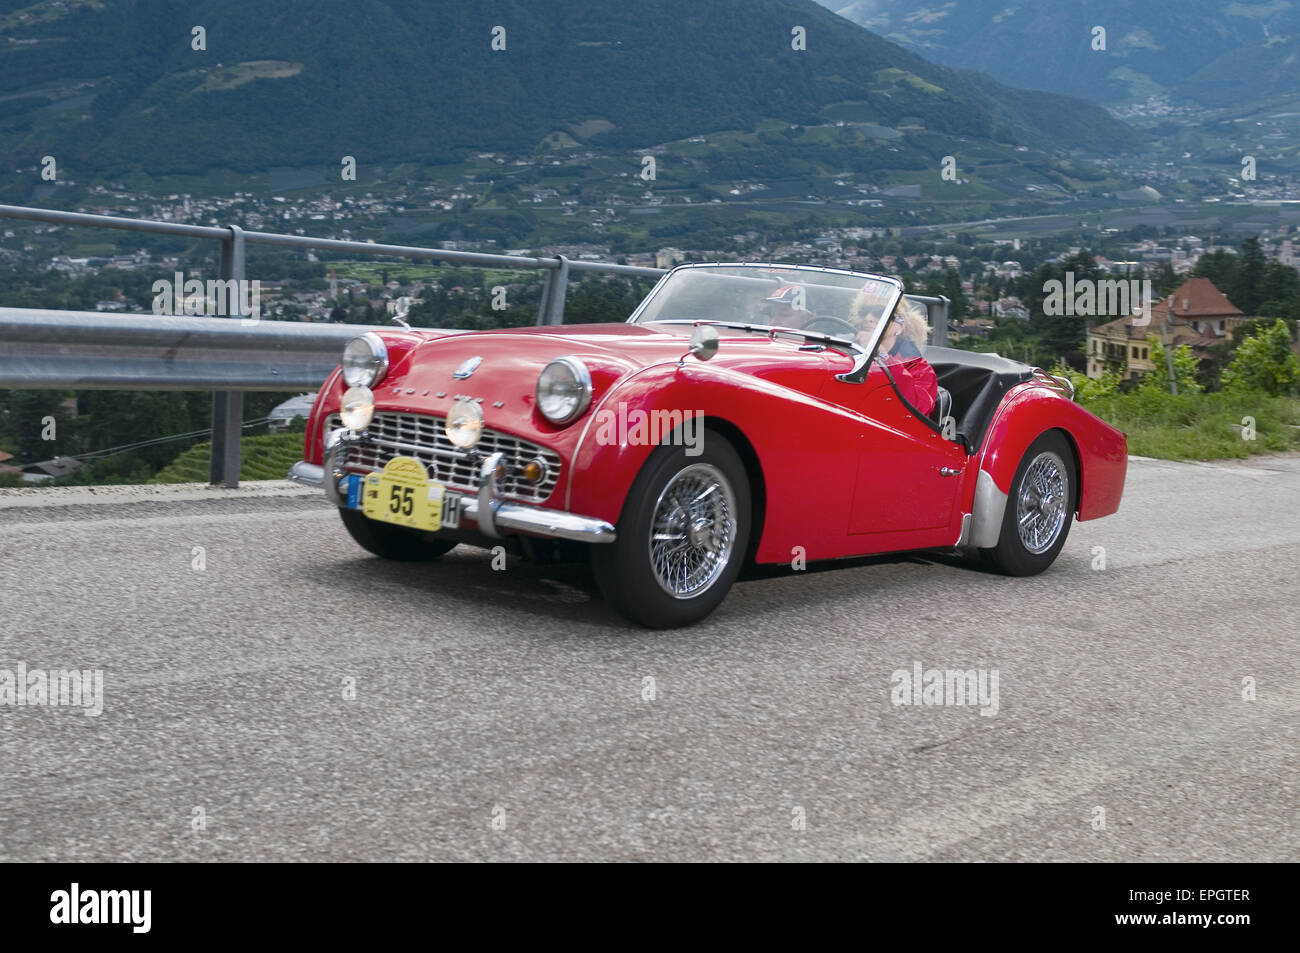 south tyrol classic cars_2014_Triumph TR 3A - Stock Image